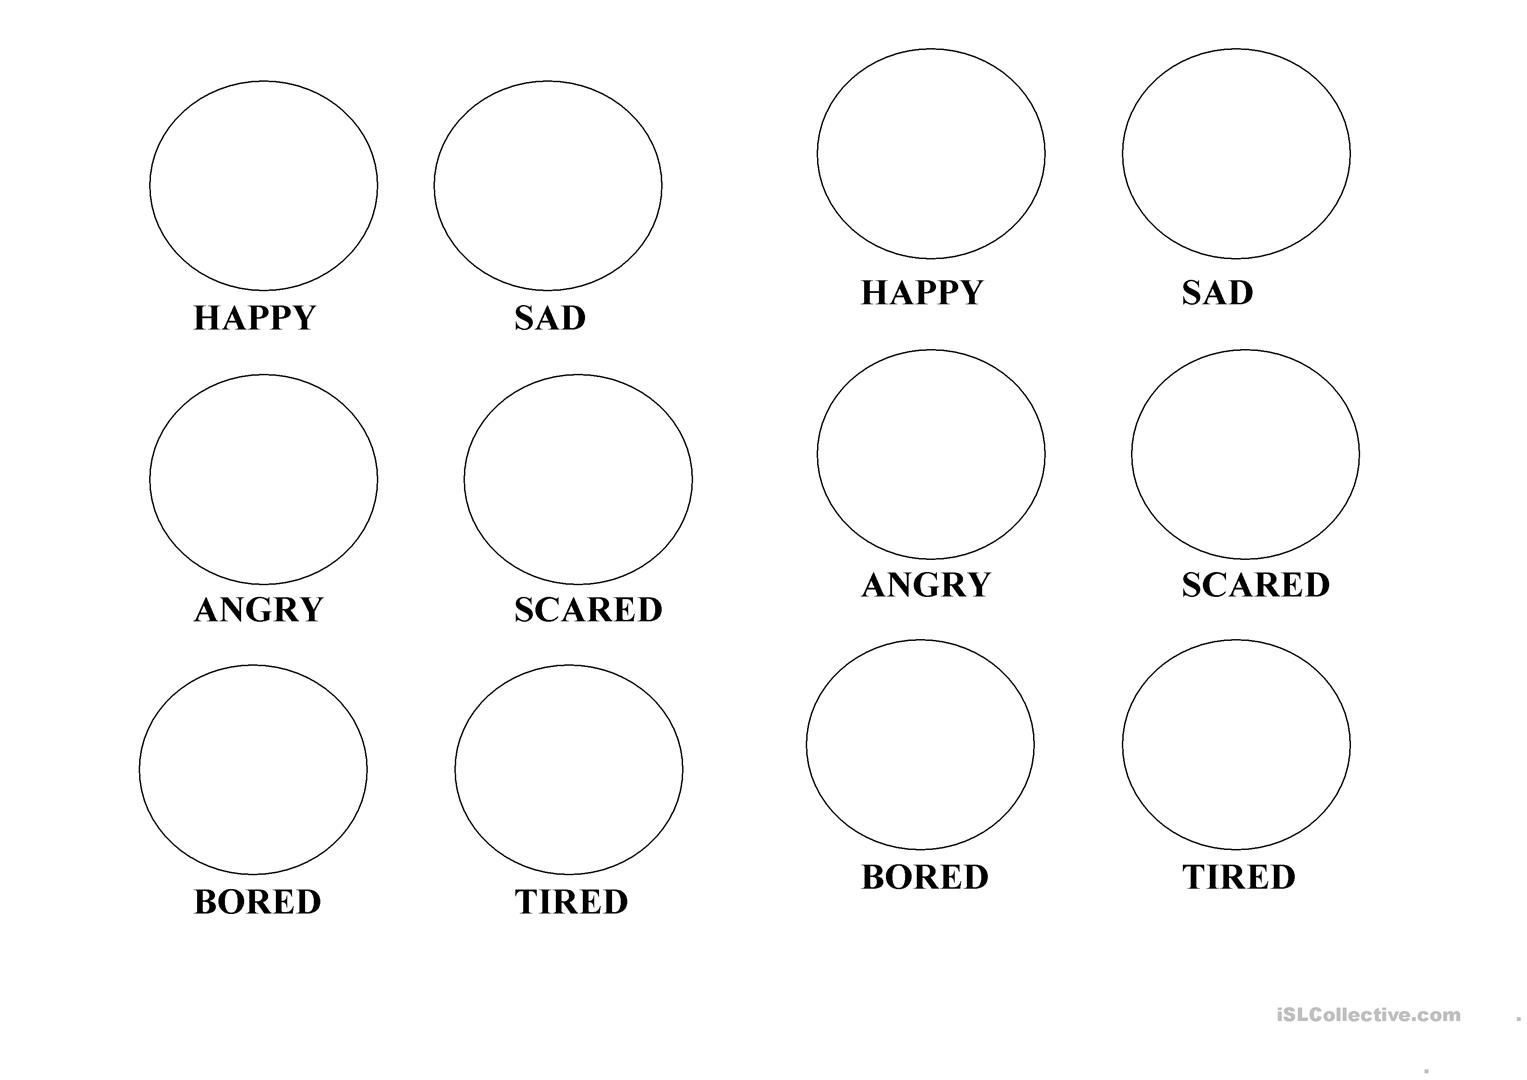 coloring emotions printable 13 best images of sad face worksheet happy sad face coloring printable emotions